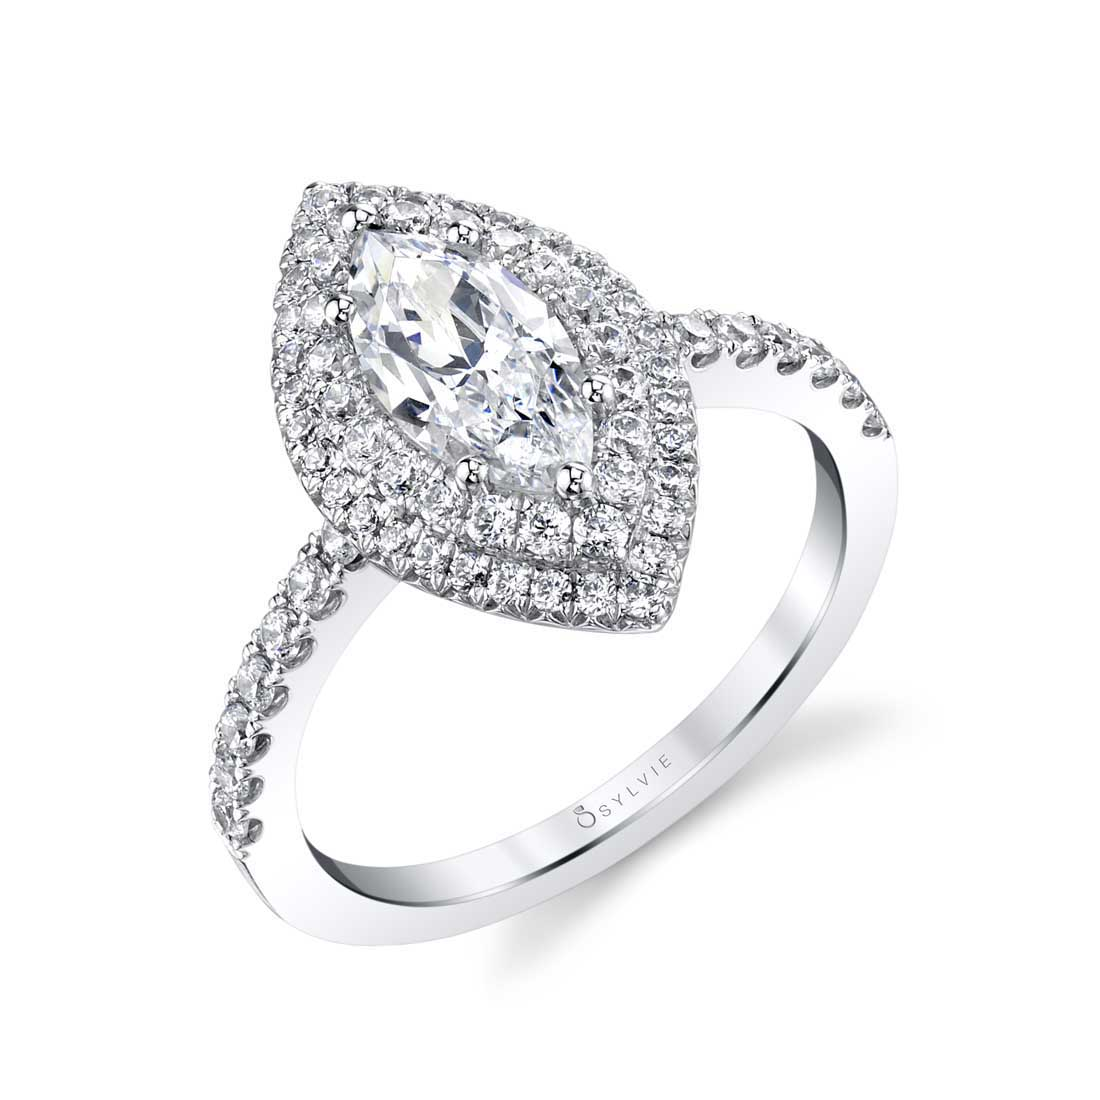 Sylvie - Claudia Marquise Double Halo Engagement Ring